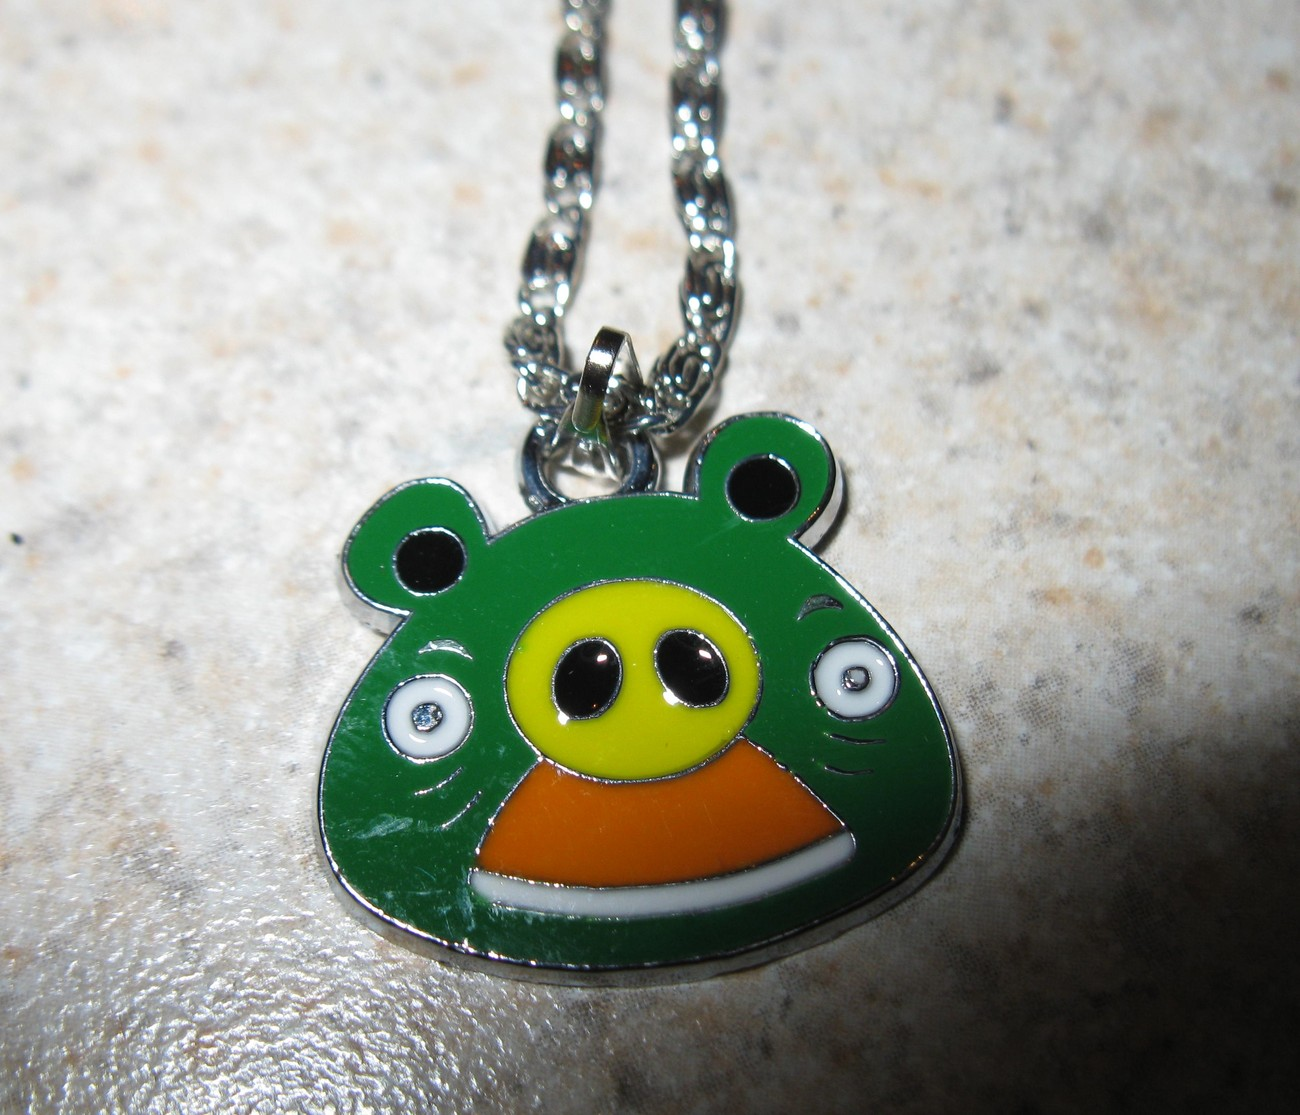 NECKLACE & PENDANT CHILDS GREEN ANGRY BIRD PIG NEW #653